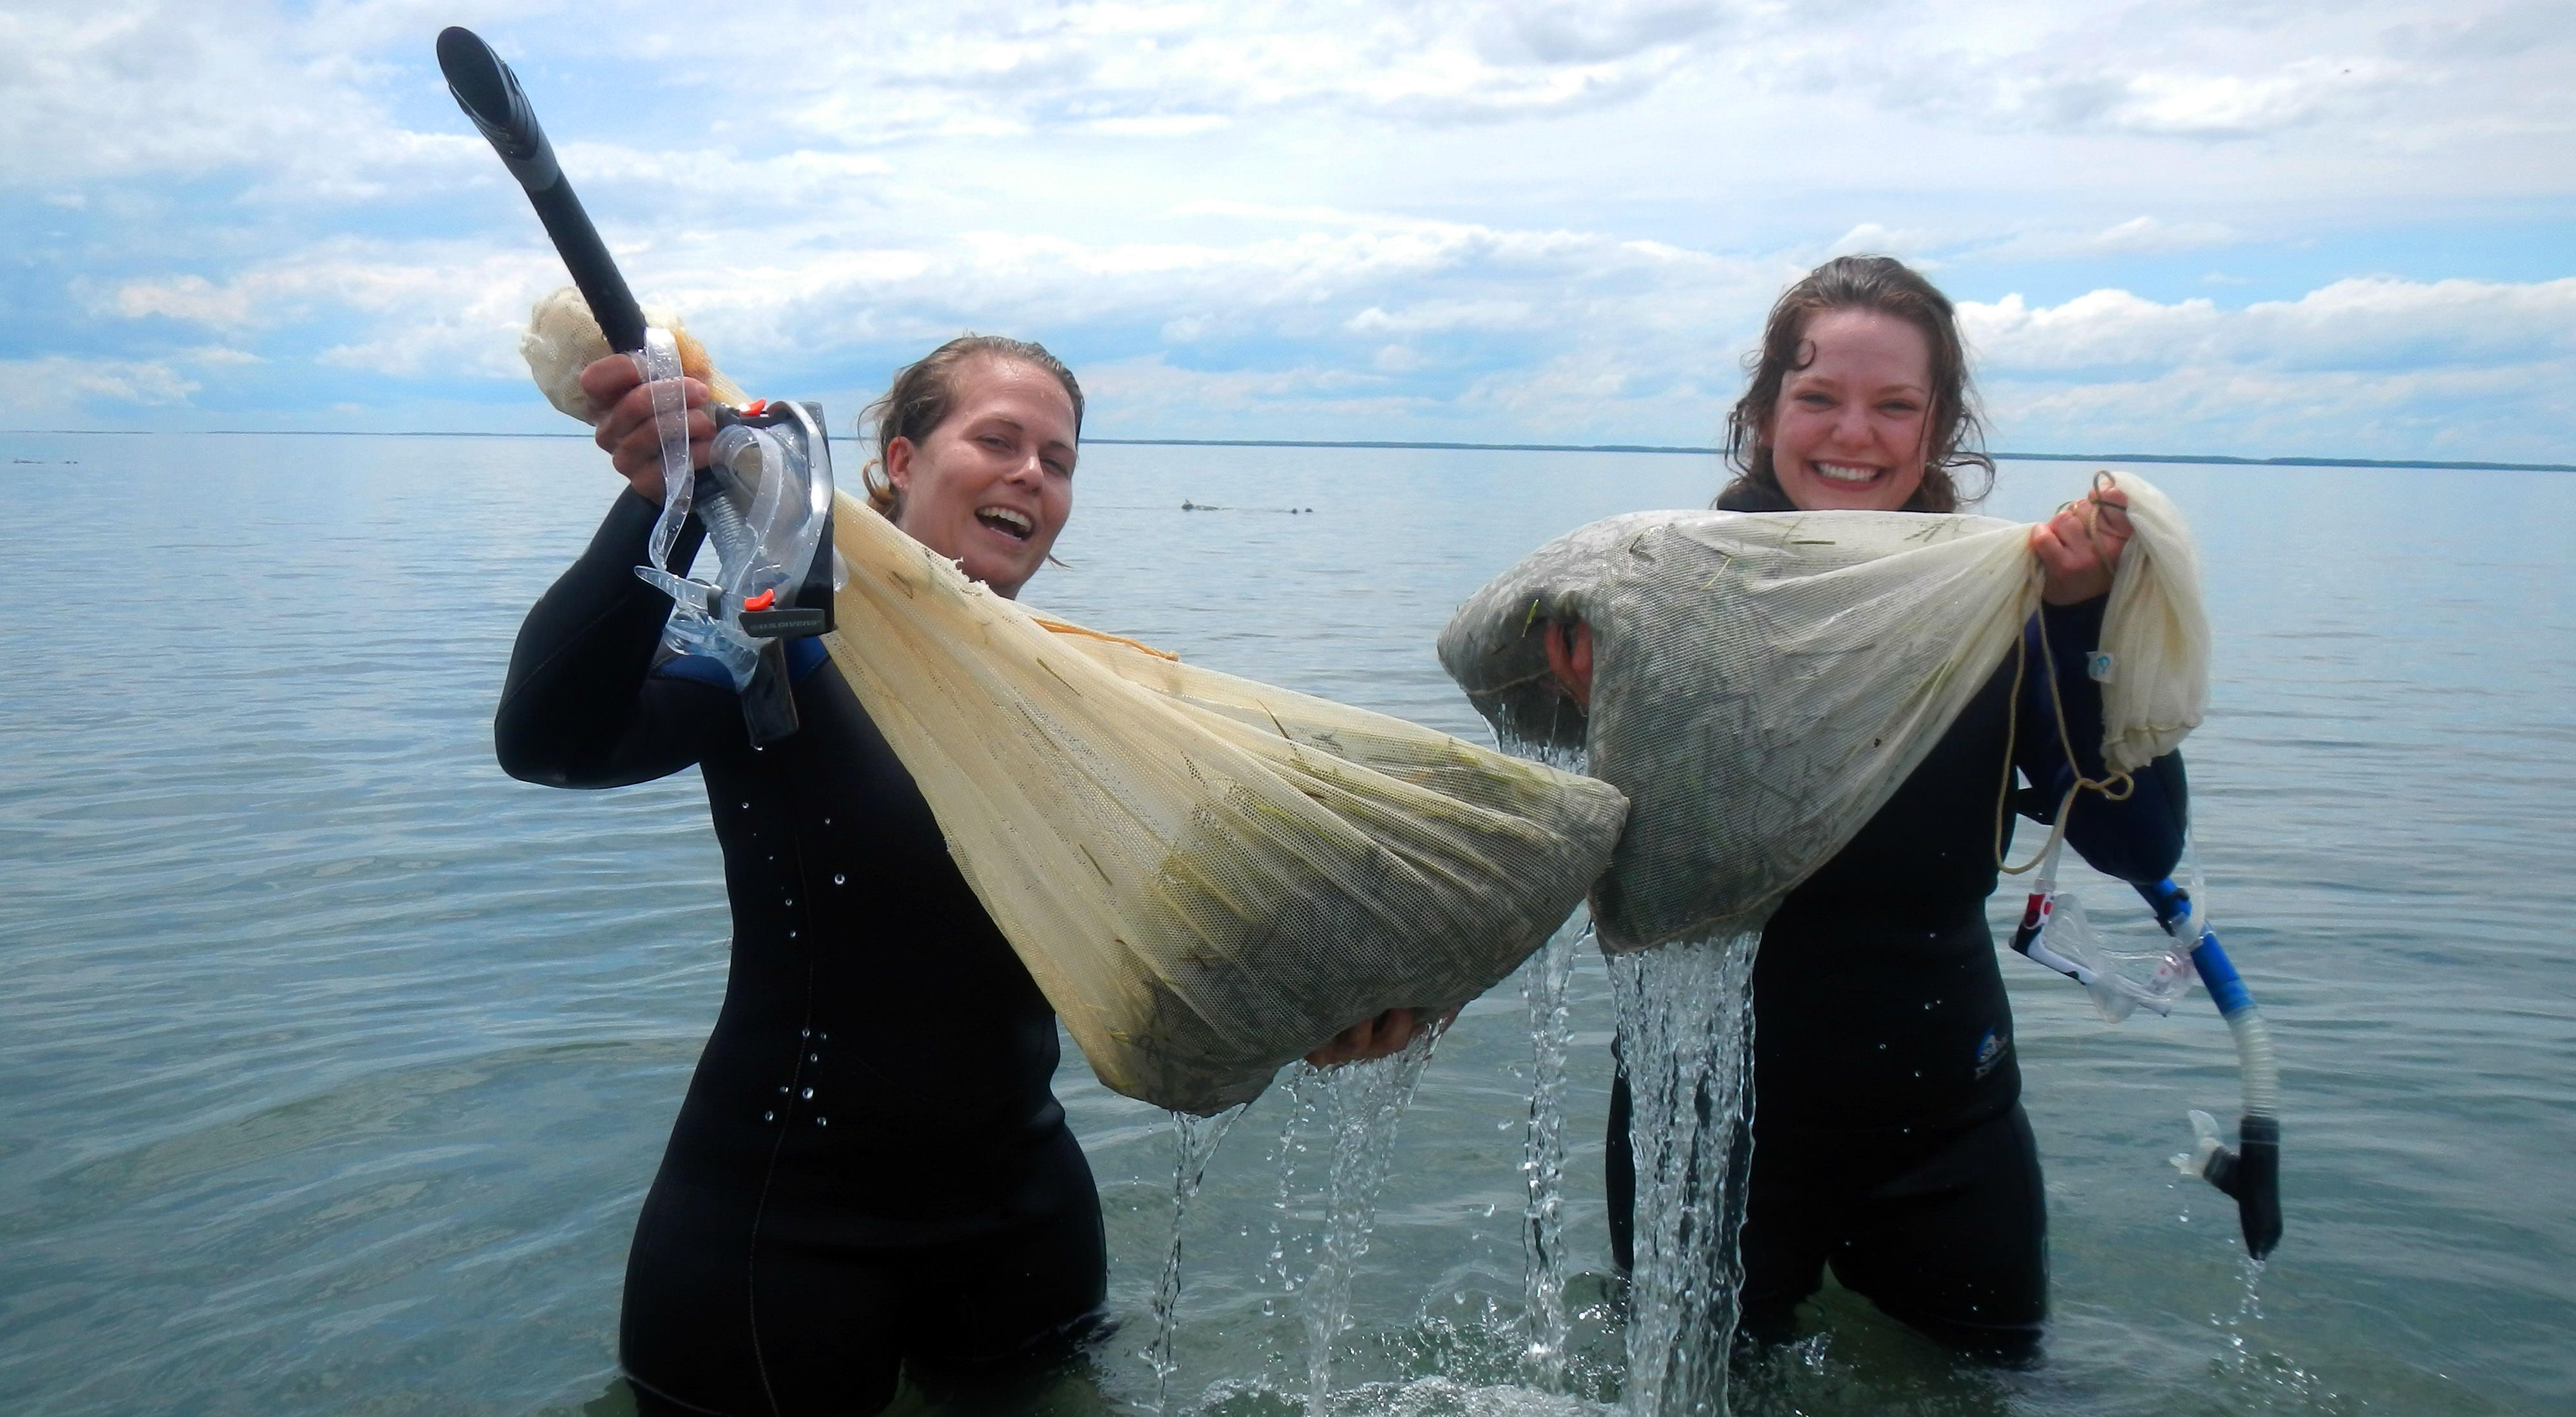 Two women in wetsuits stand in the water holding up bags full of eelgrass shoots.